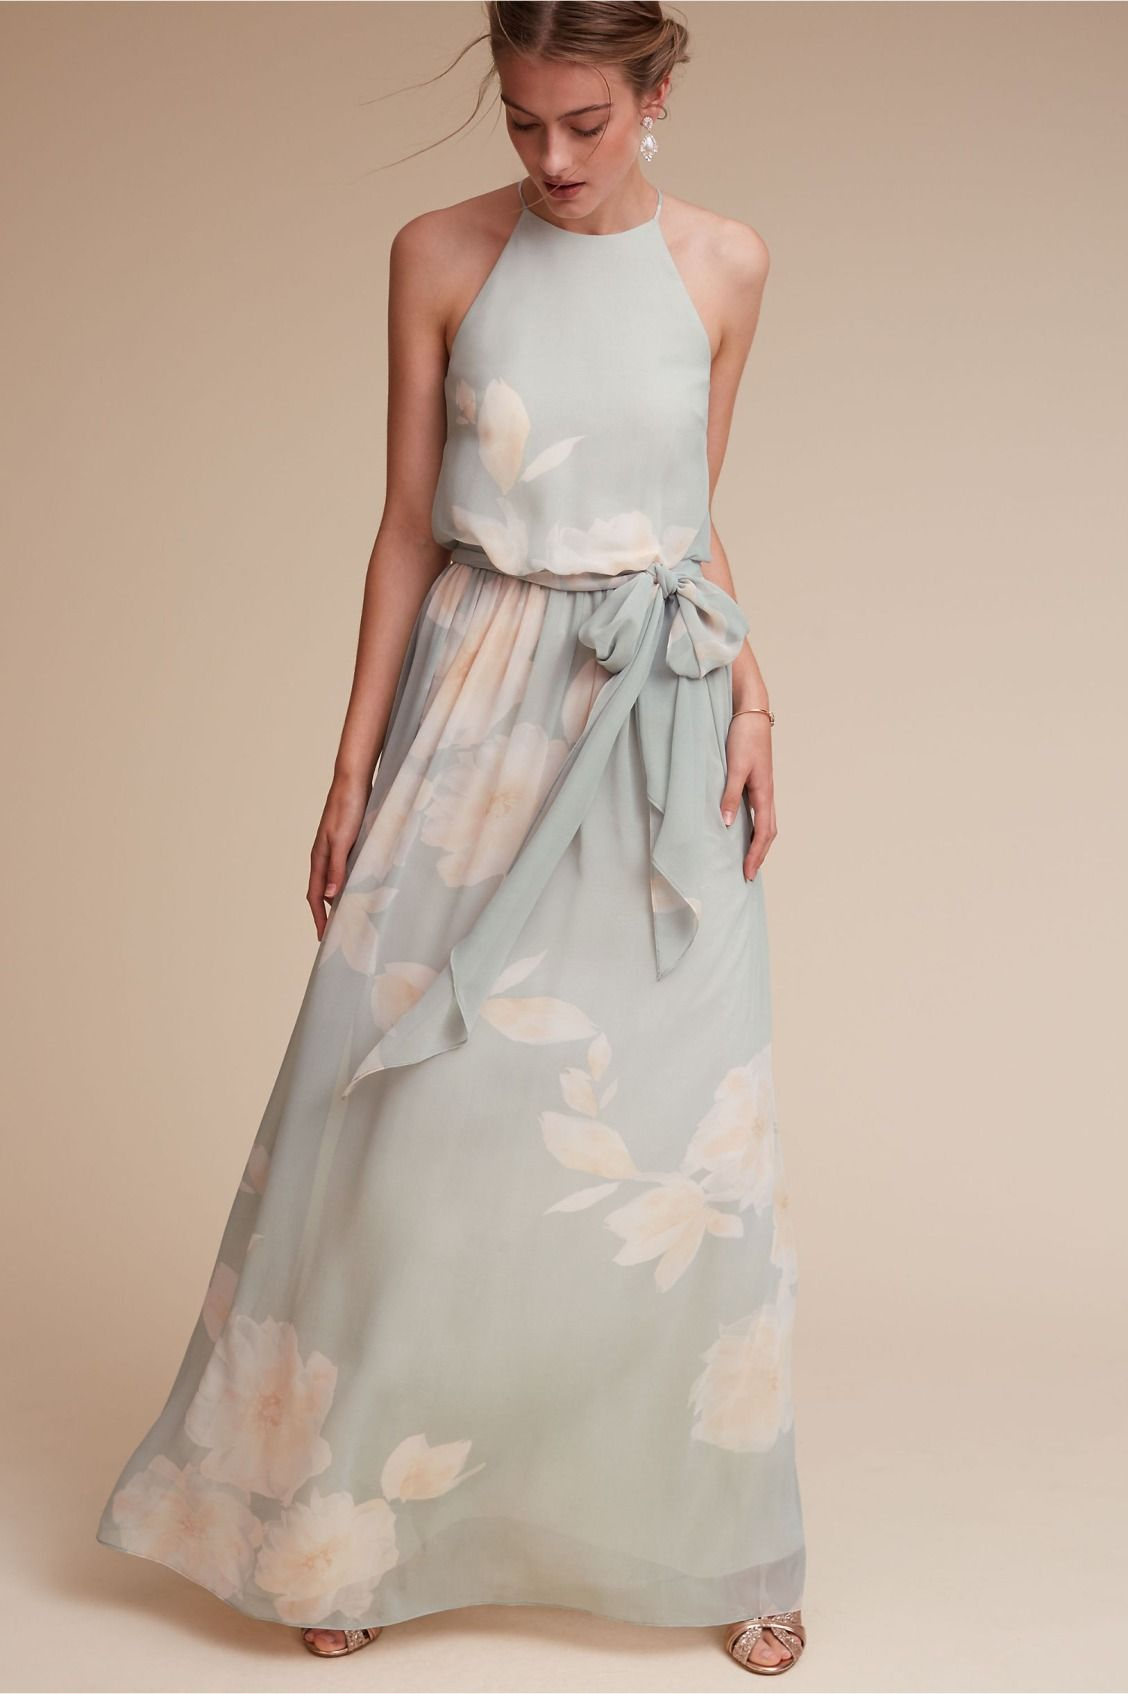 Xo alana dress in mintblush from bhldn pattern play bhldn alana dress in bridesmaids bridesmaid dresses long ombrellifo Image collections